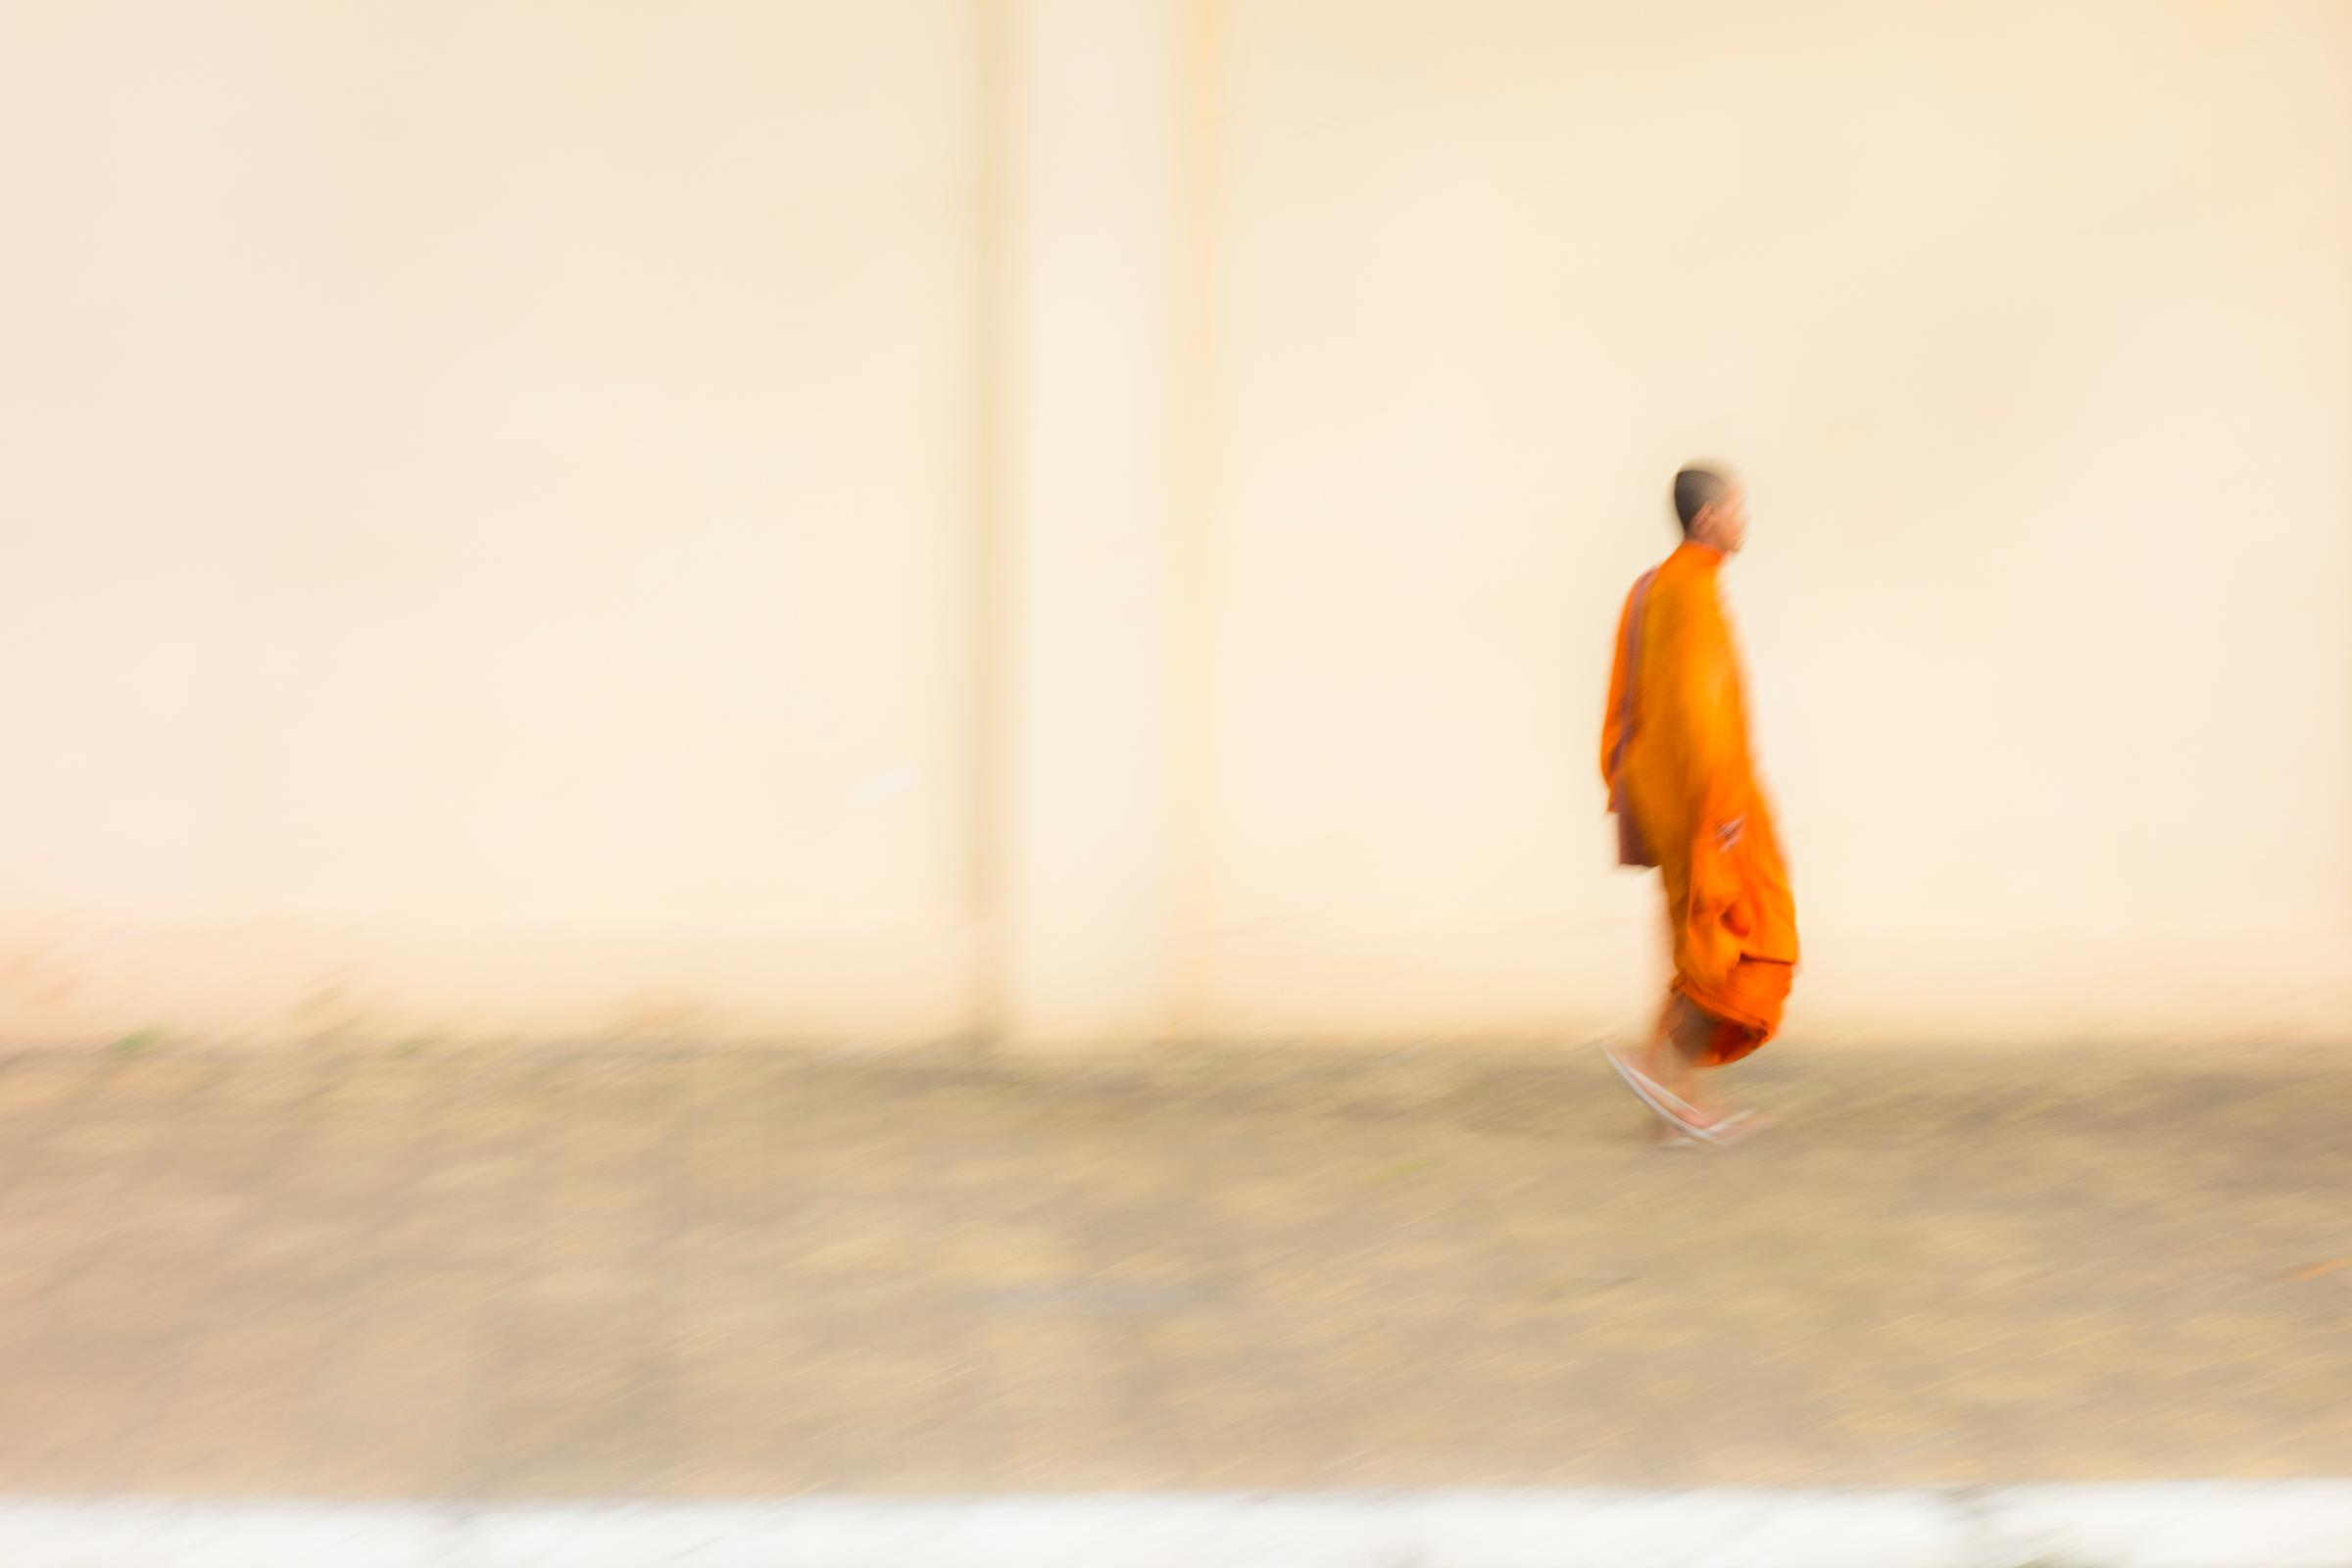 Floating Monk. Phnom Penh. Cambodia, South-East Asia.